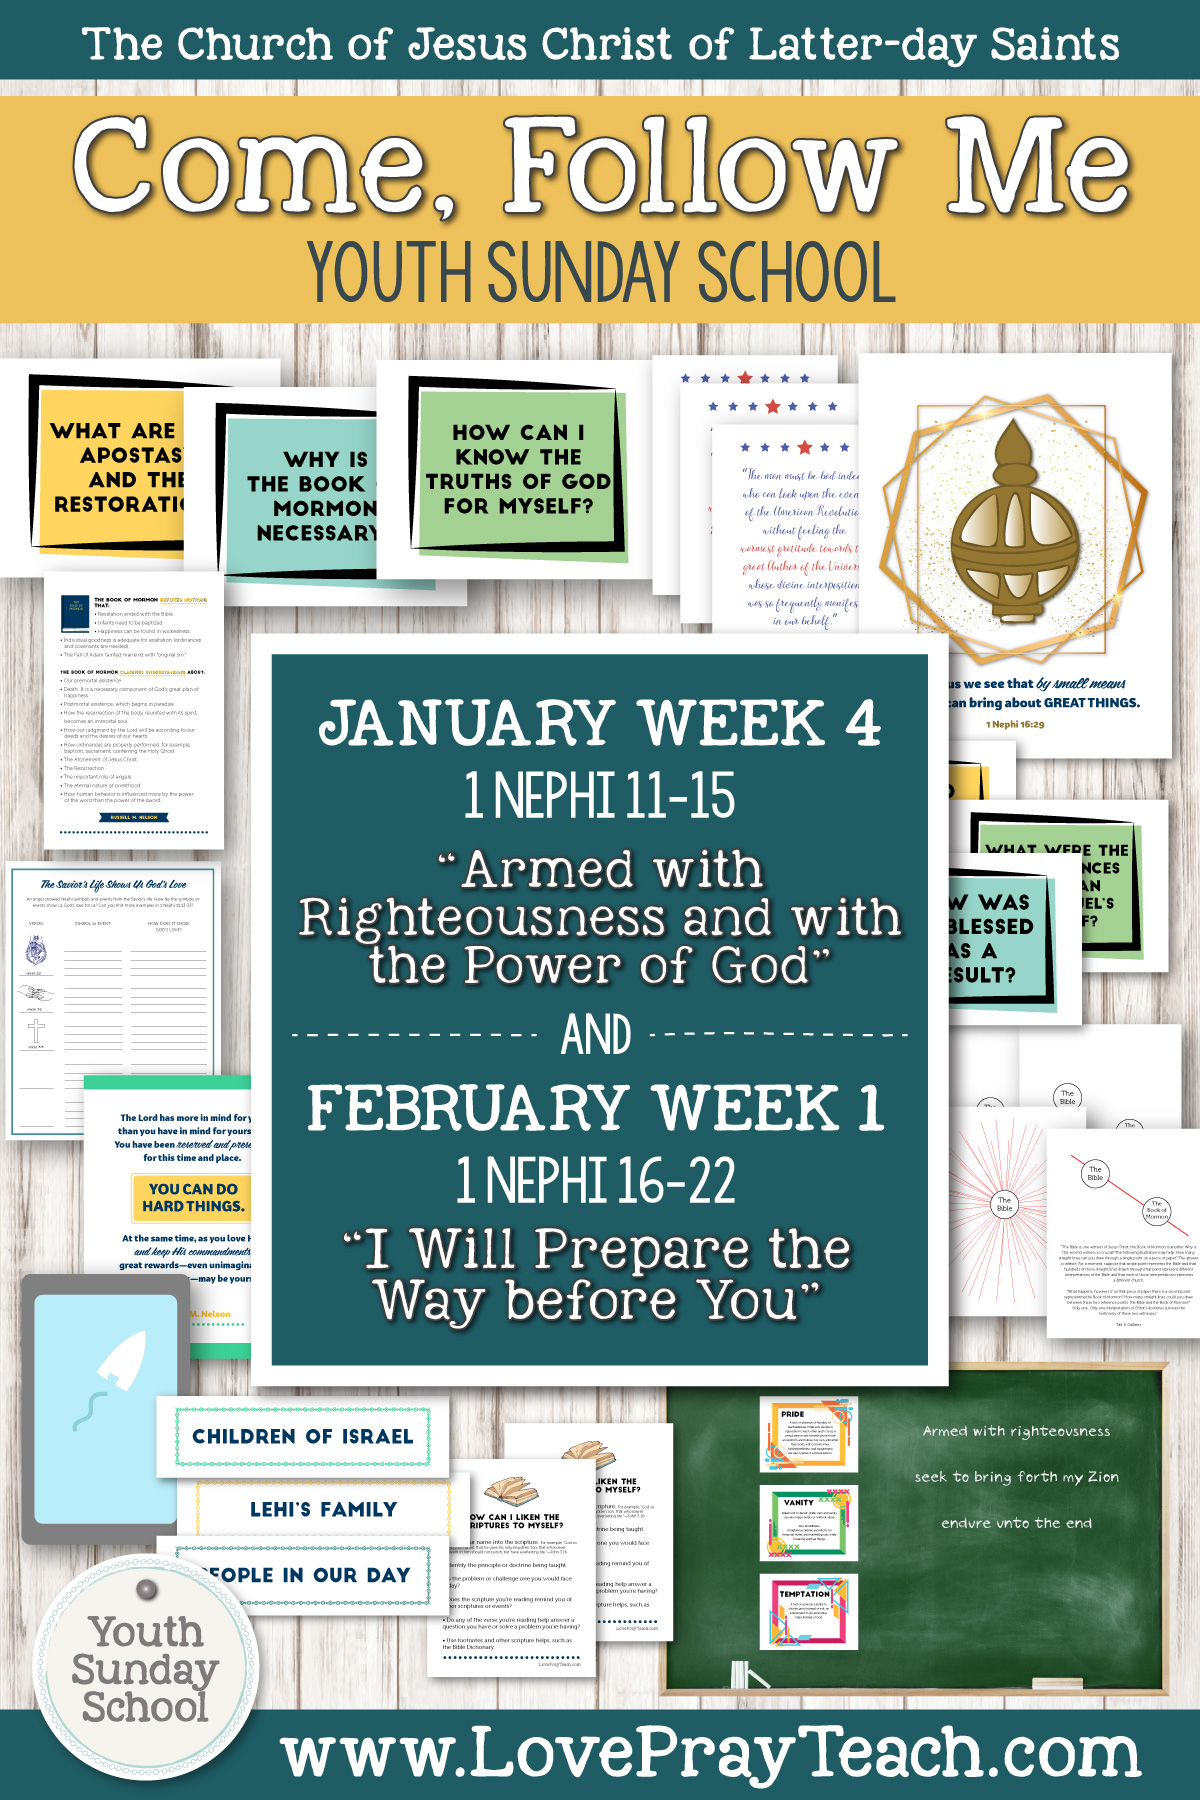 "Youth Sunday School Come, Follow Me Book of Mormon 2020 January 20–26 1 Nephi 11–15 ""Armed with Righteousness..."" AND January 27–February 2 1 Nephi 16–22 ""I Will Prepare the Way before You"" Printable Lesson Packet for Latter-day Saints"